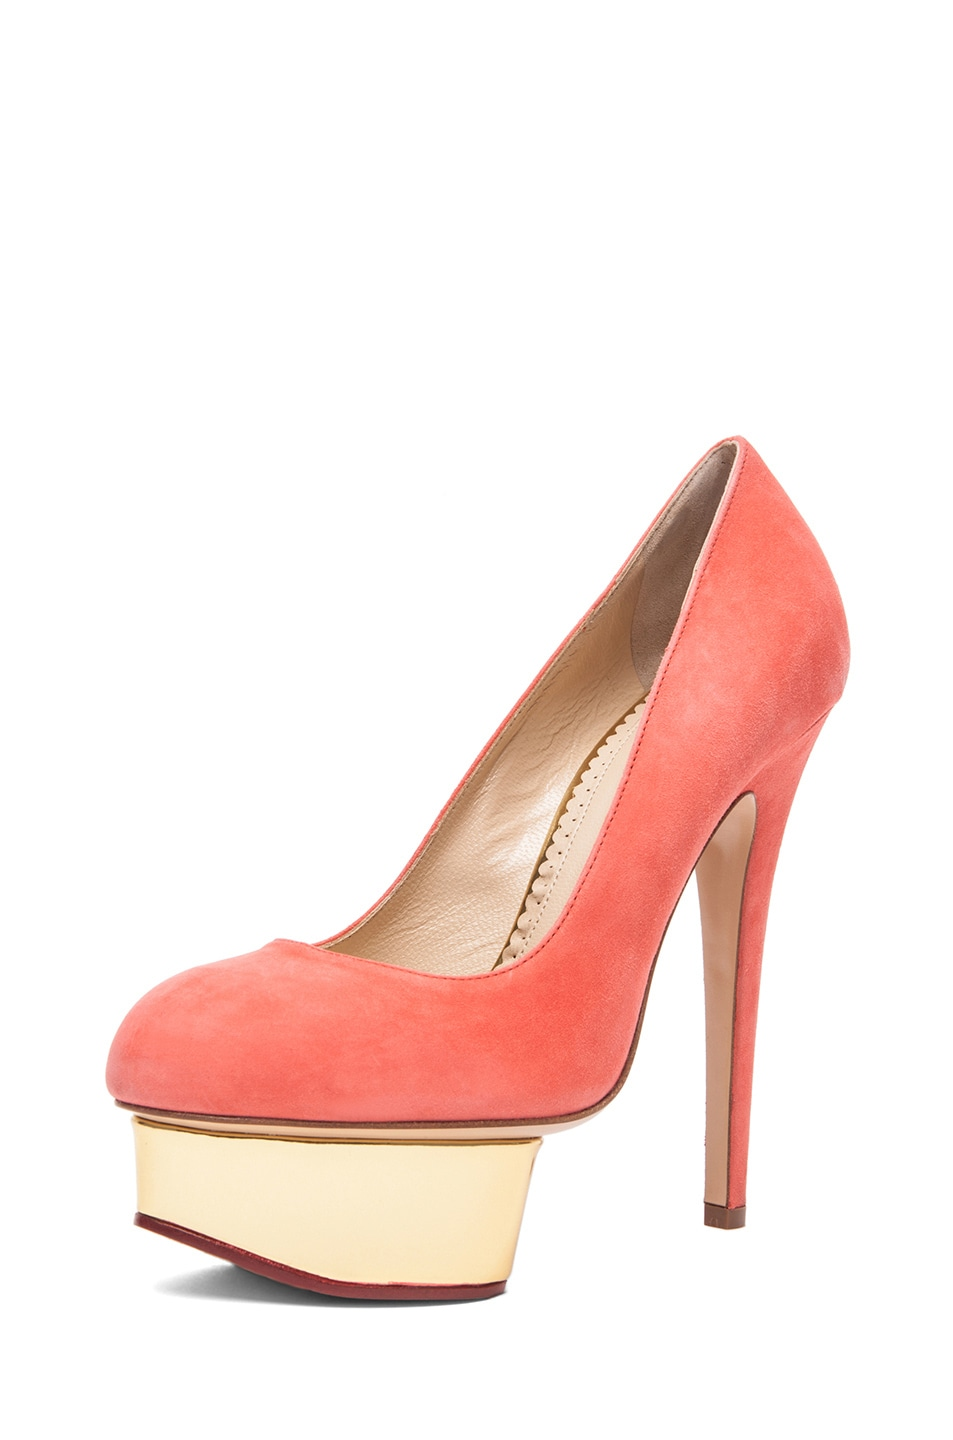 Image 2 of Charlotte Olympia Dolly Puttin On The Glitz Suede Pump in Coral